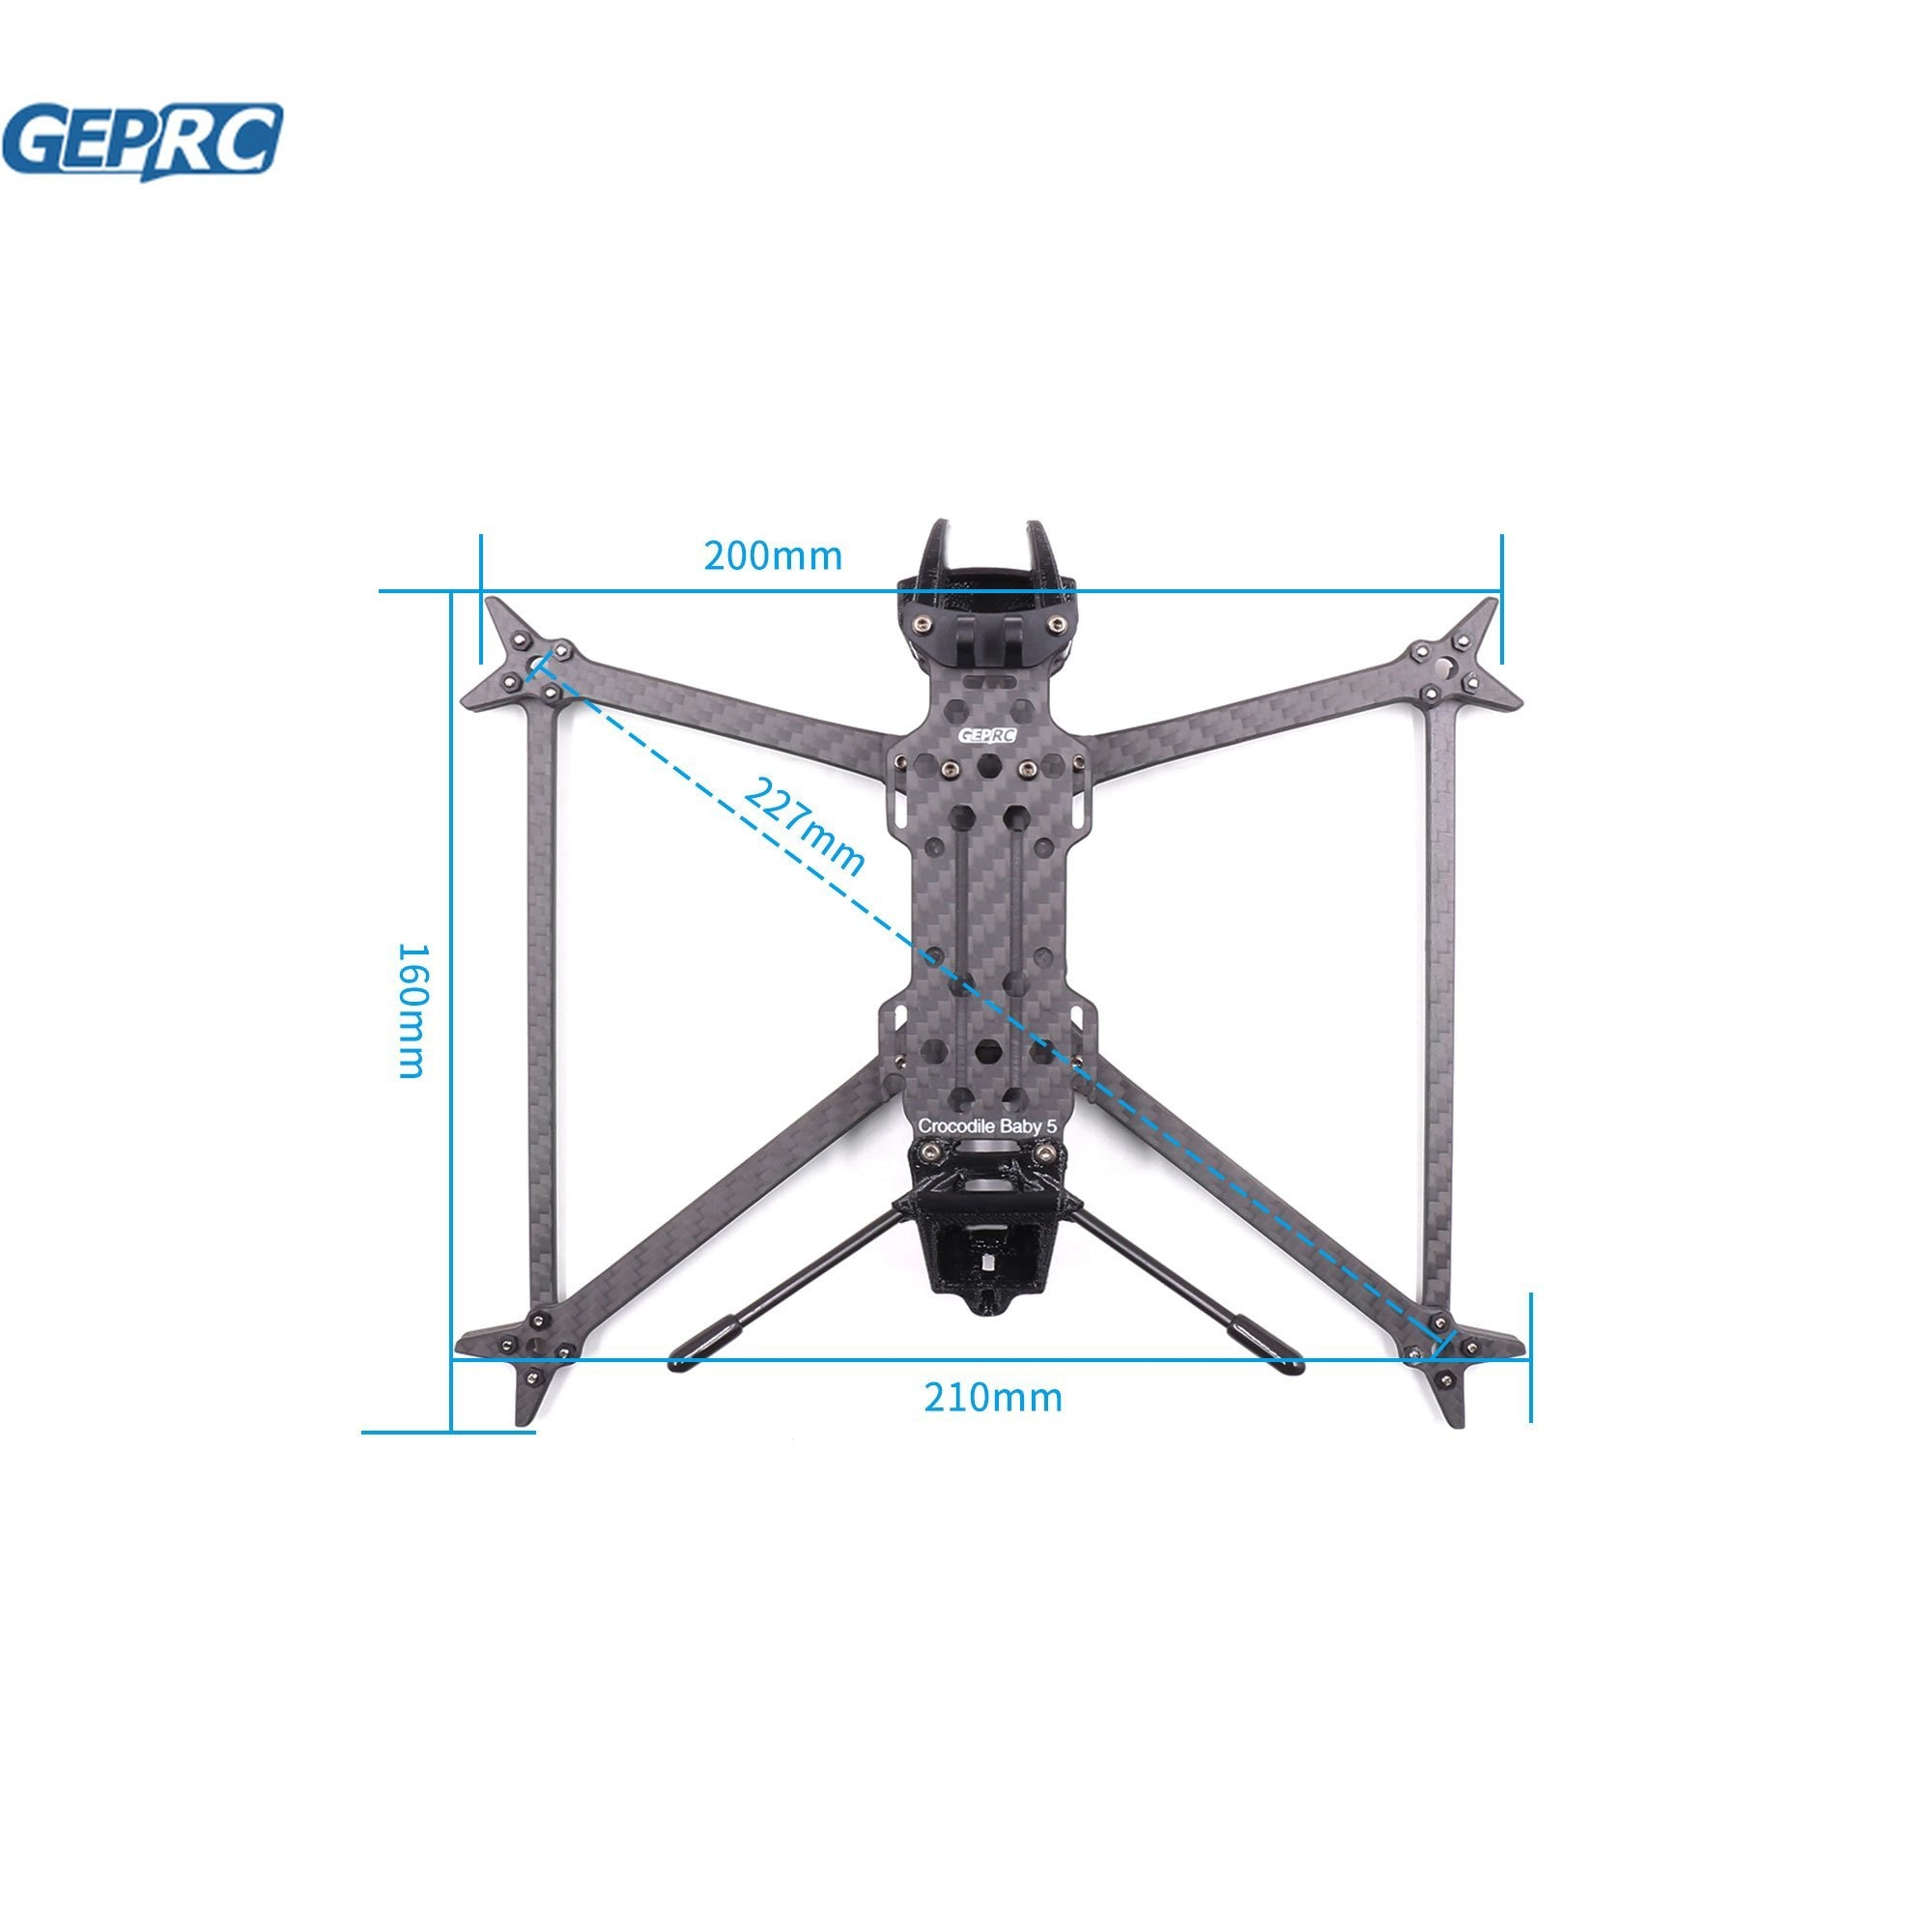 GEPRC GEP-CB5 Frame Parts for crocodile baby 5 drone 227mm Wheelbase DIY FPV Racing carbon fiber frame accessories enlarge